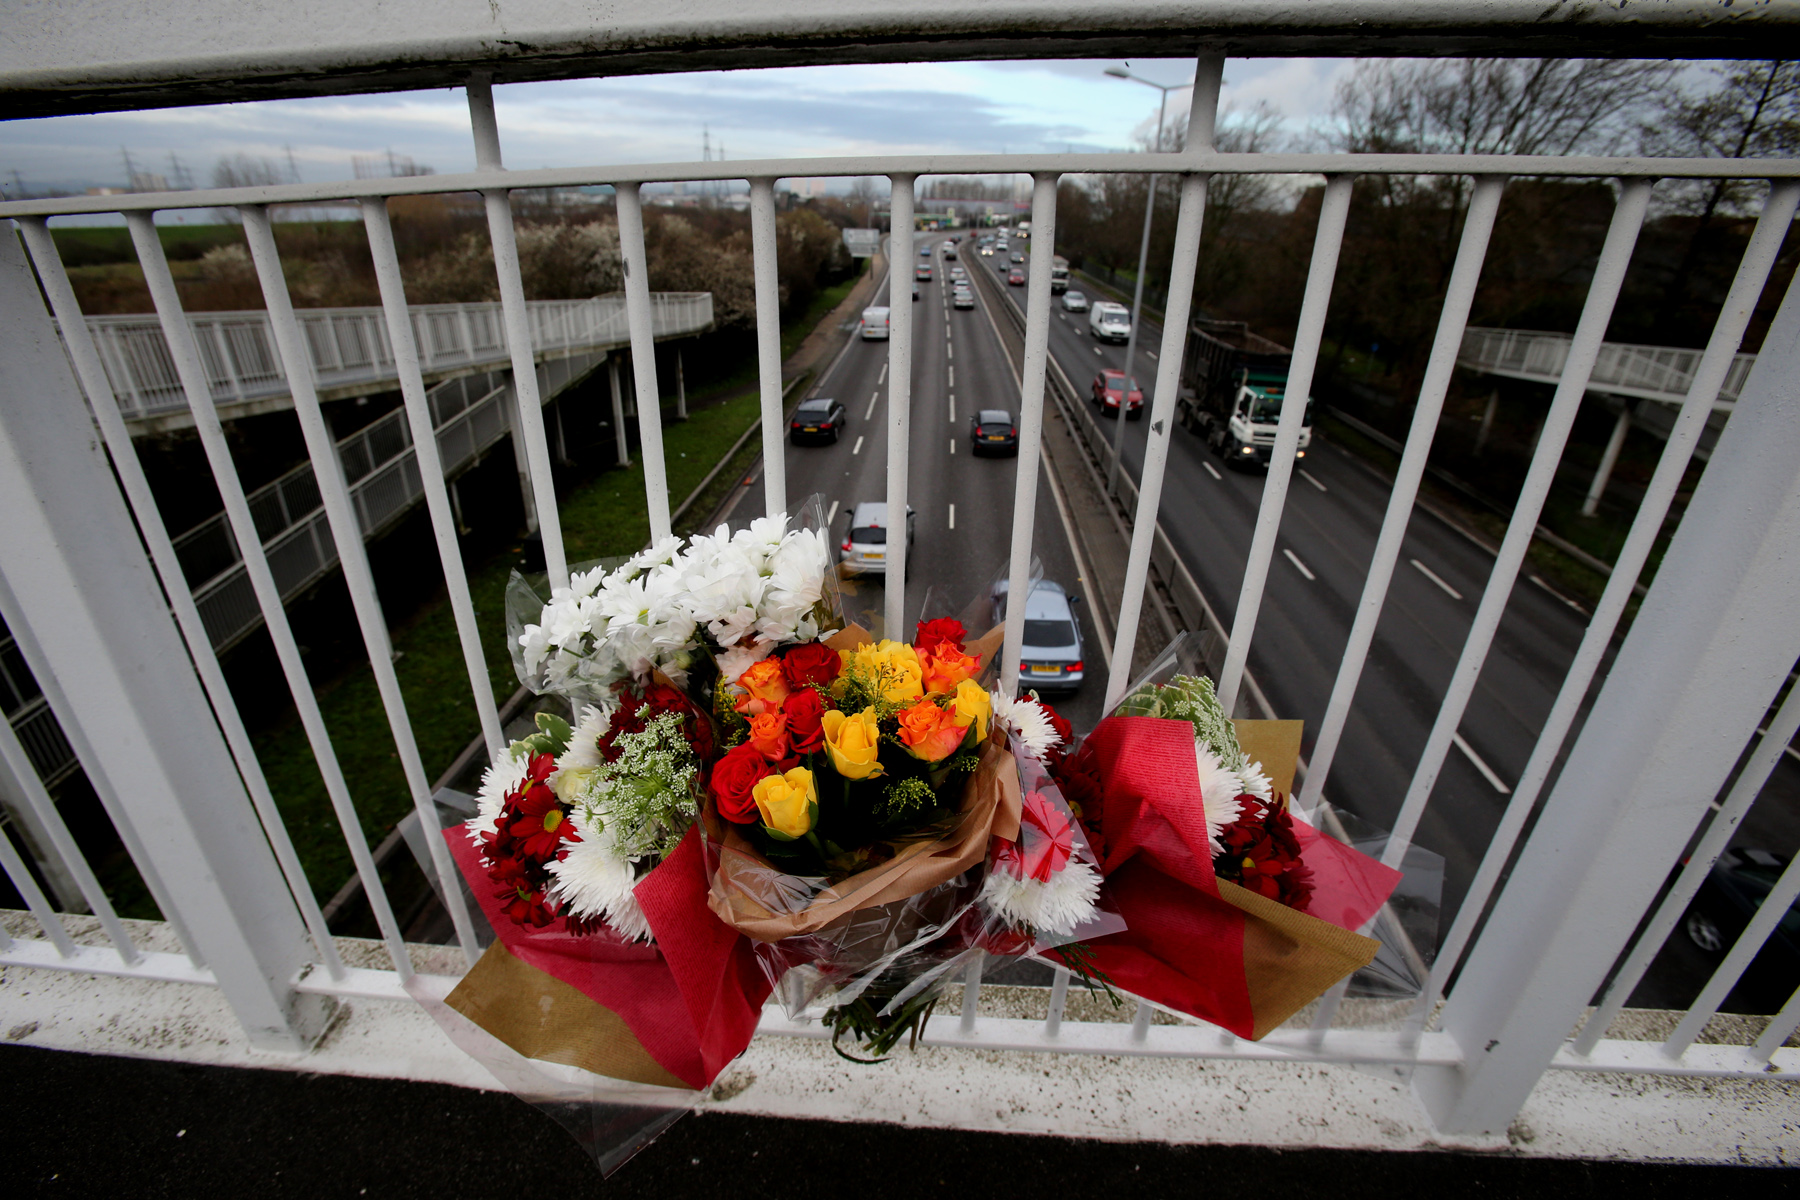 Details of footbridge death victim revealed